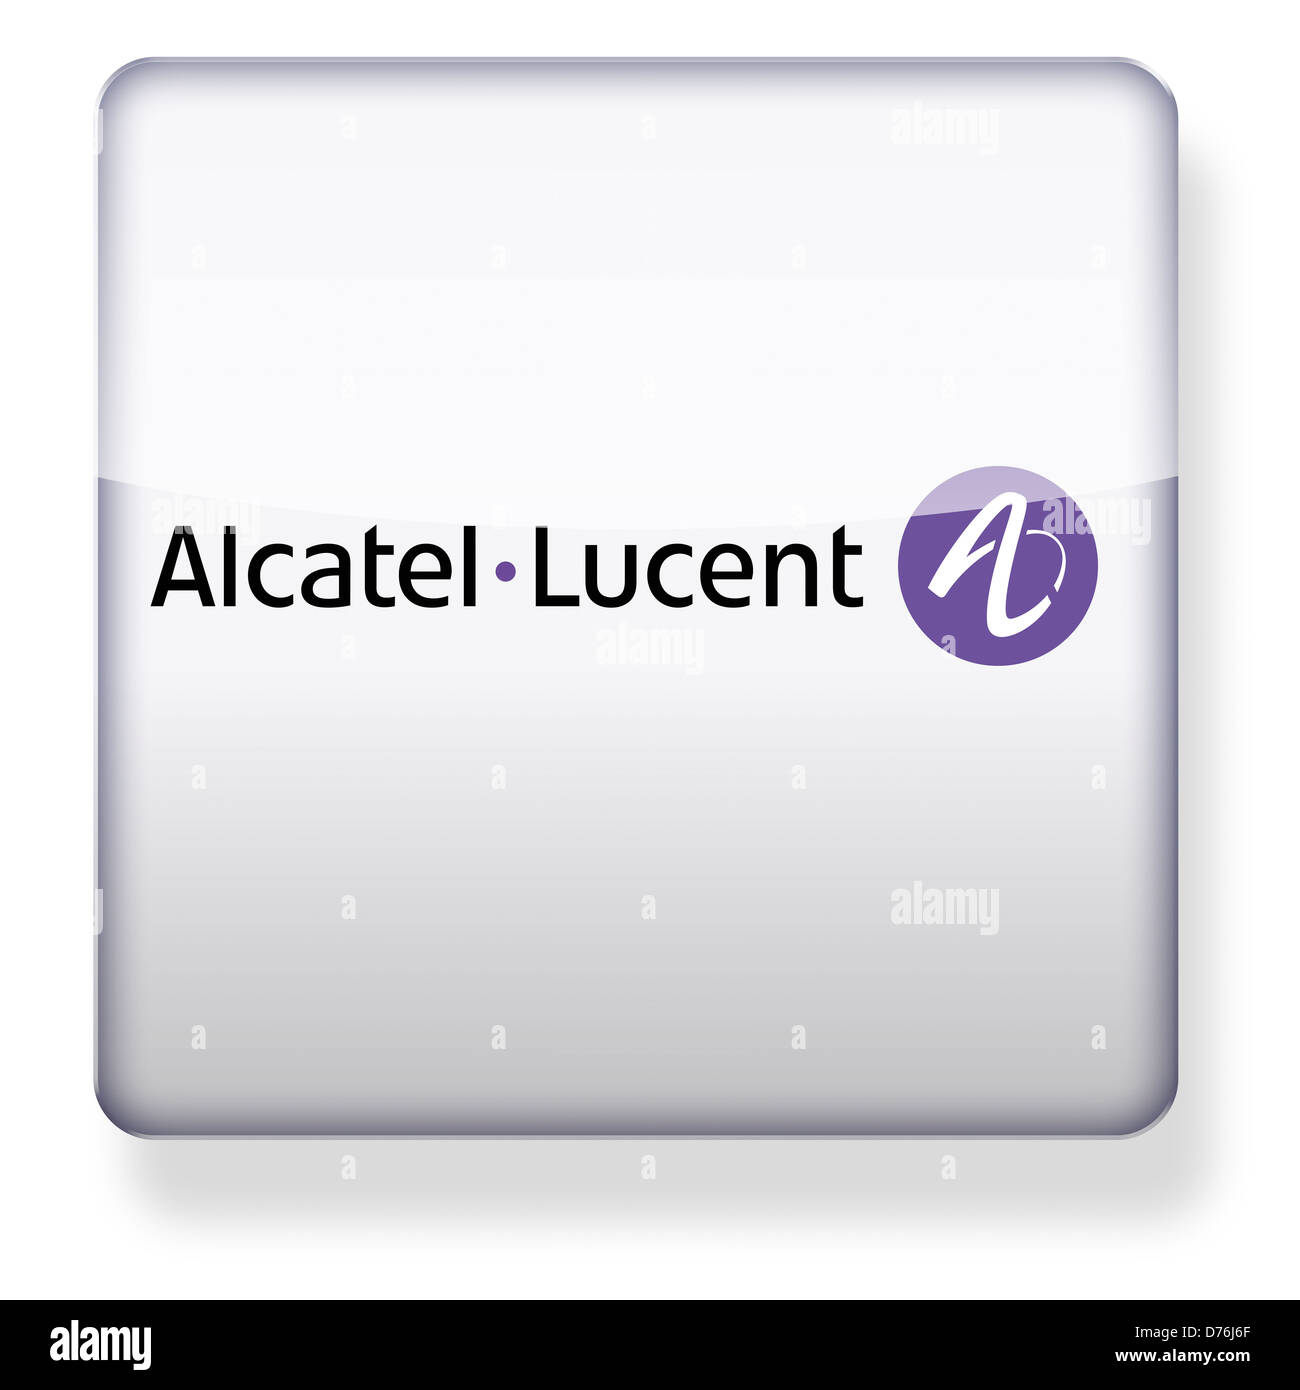 Alcatel Lucent logo as an app icon. Clipping path included. - Stock Image